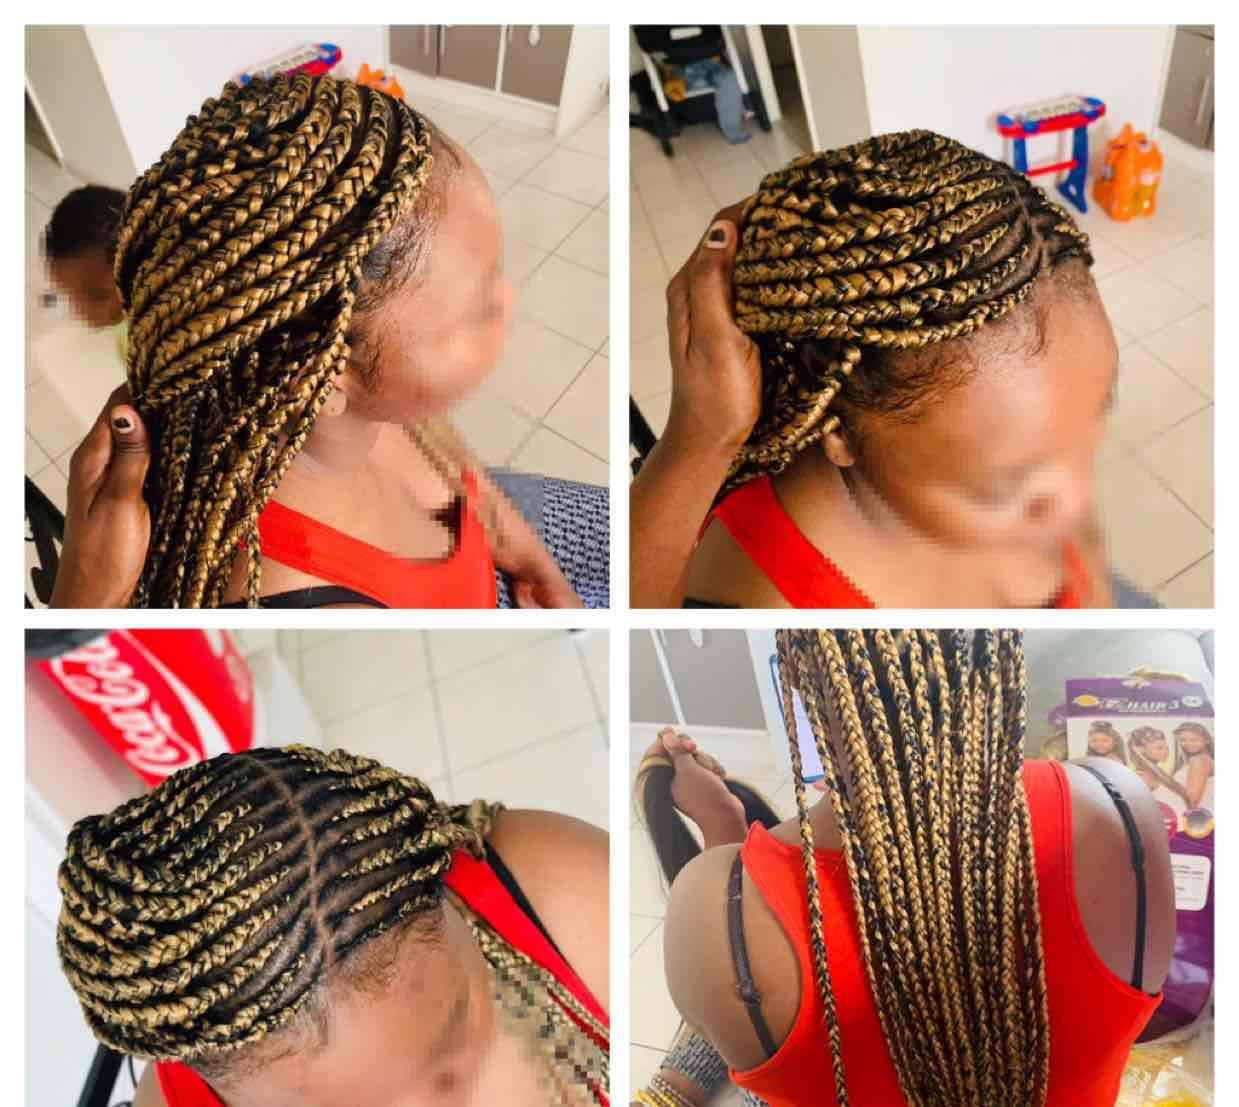 salon de coiffure afro tresse tresses box braids crochet braids vanilles tissages paris 75 77 78 91 92 93 94 95 XRJZEZPZ